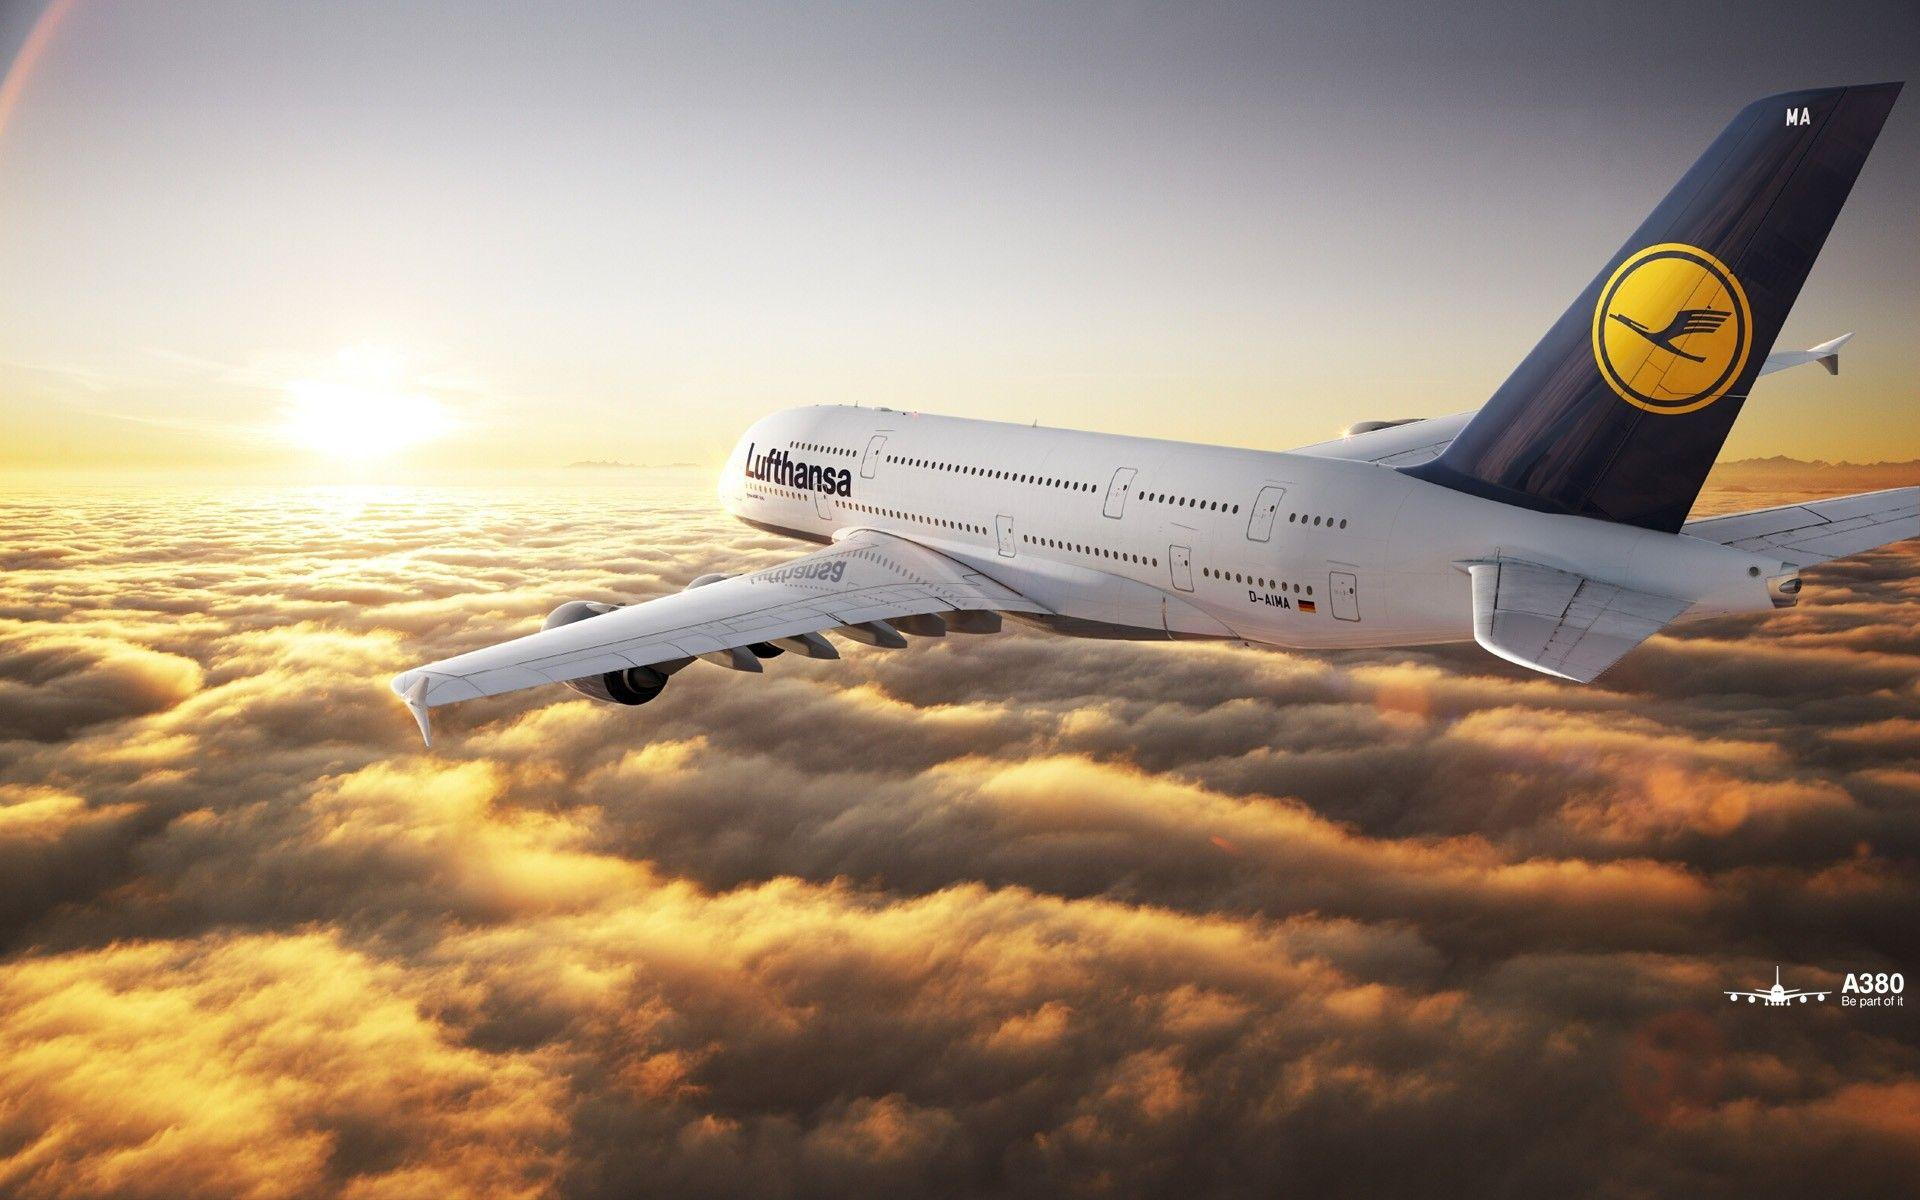 Airbus A380 Wallpapers, Pictures, Image